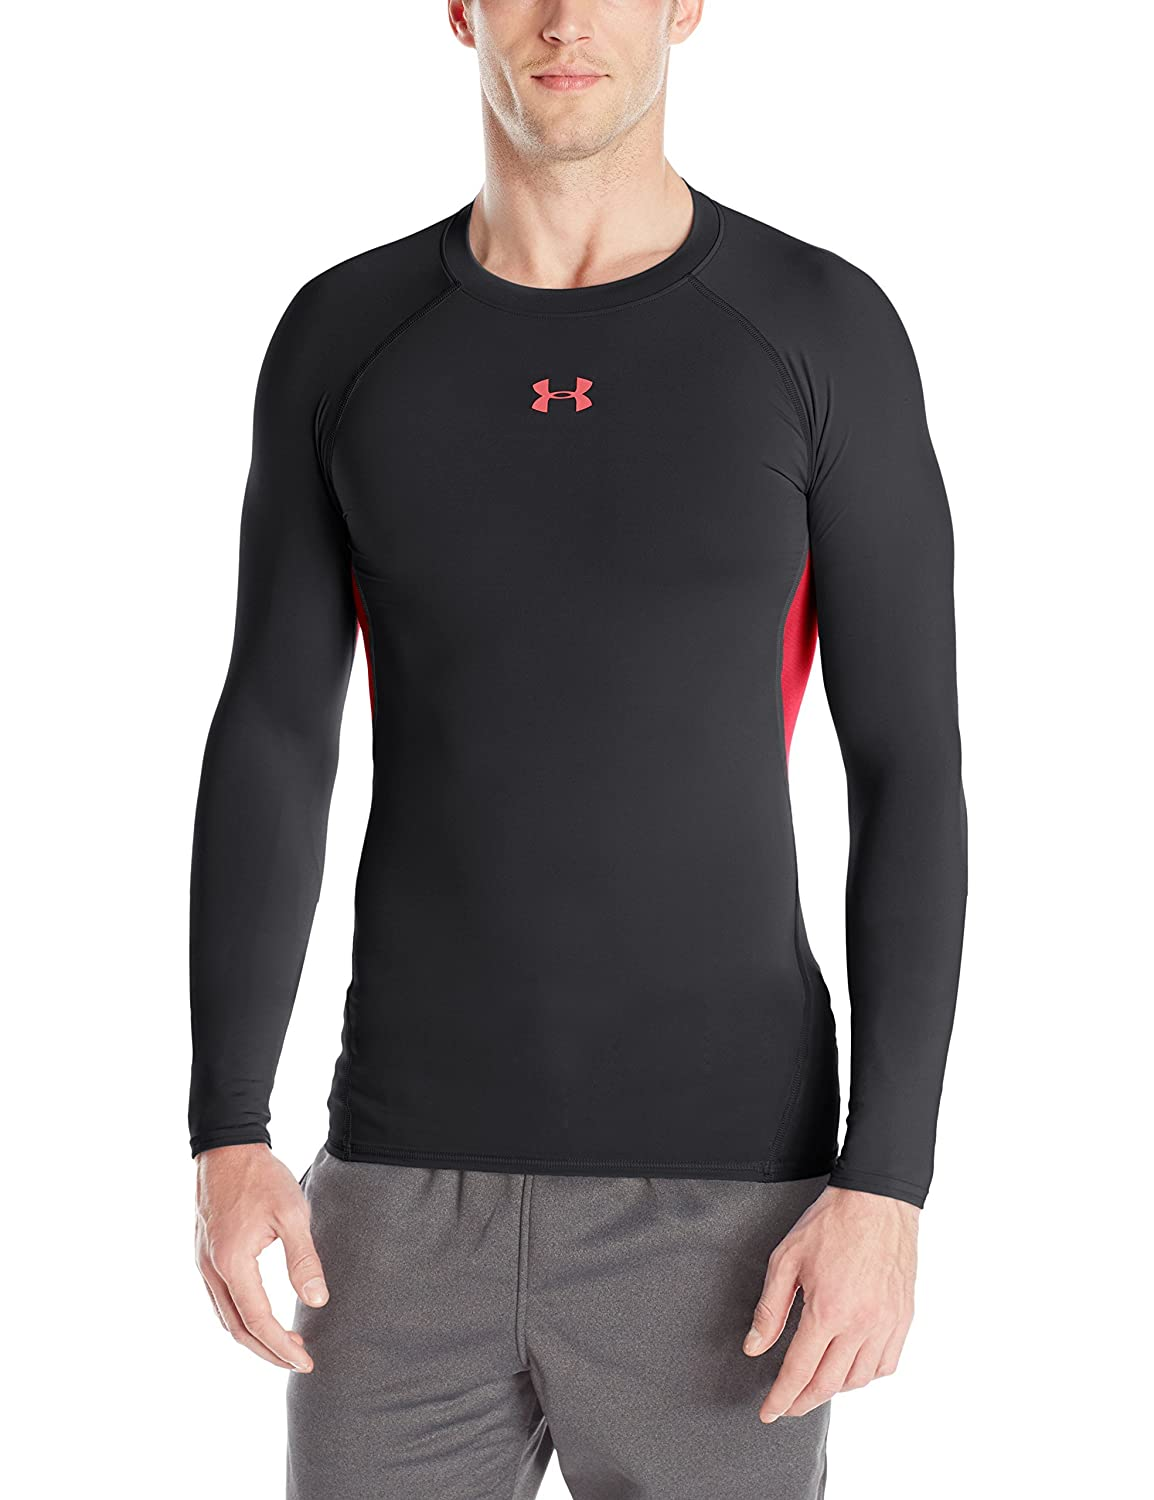 Under Armour Men's HeatGear Armour Long Sleeve Compression Shirt 1257471-0902XL